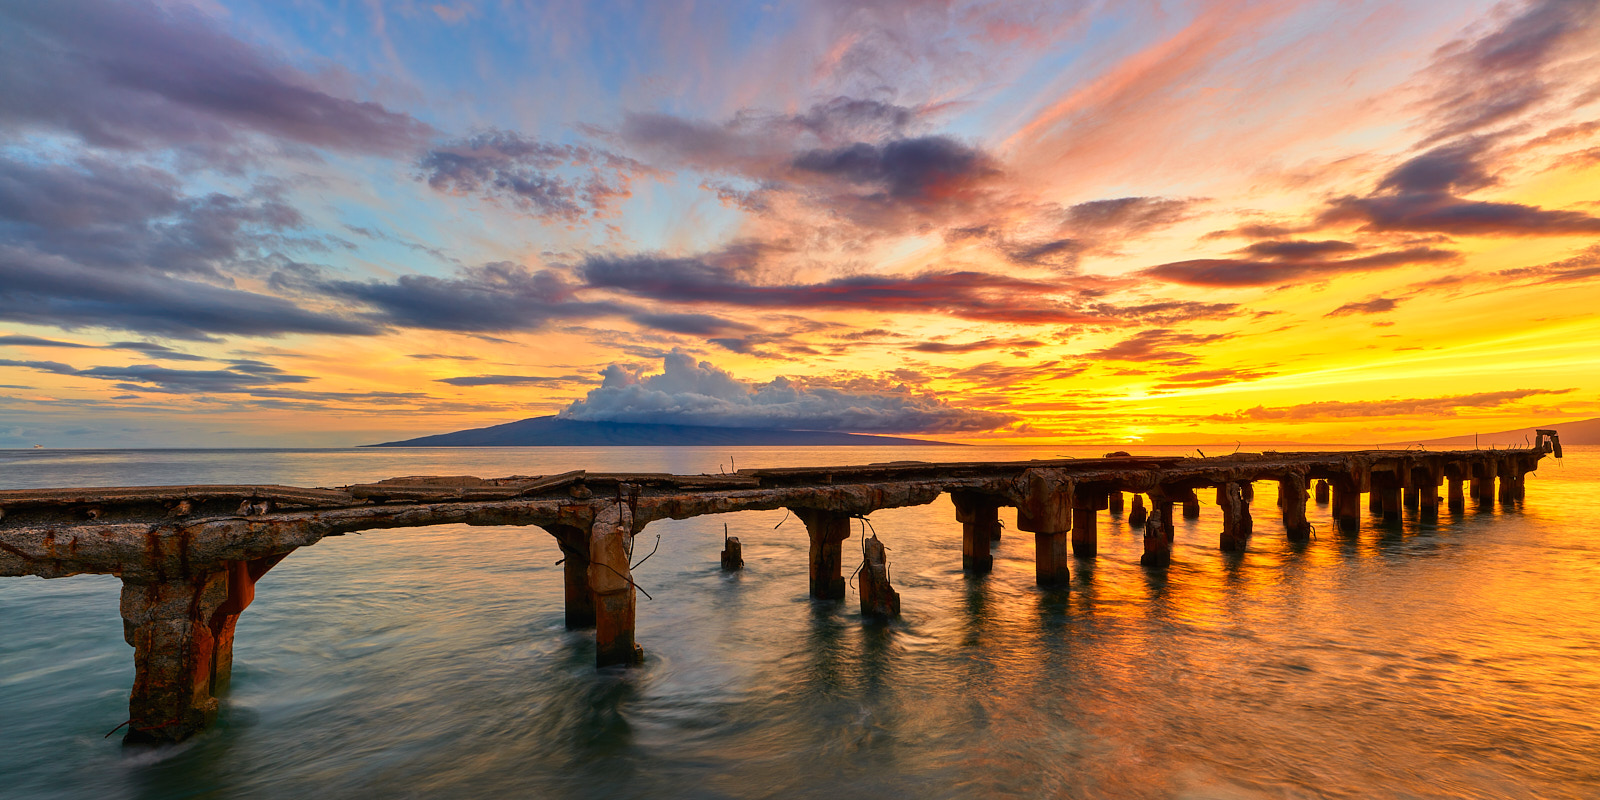 a very vibrant sunset captured at Mala Lamp extending into the ocean in Lahaina on the island of Maui.  Hawaii Panorama photographed by Andrew Shoemaker